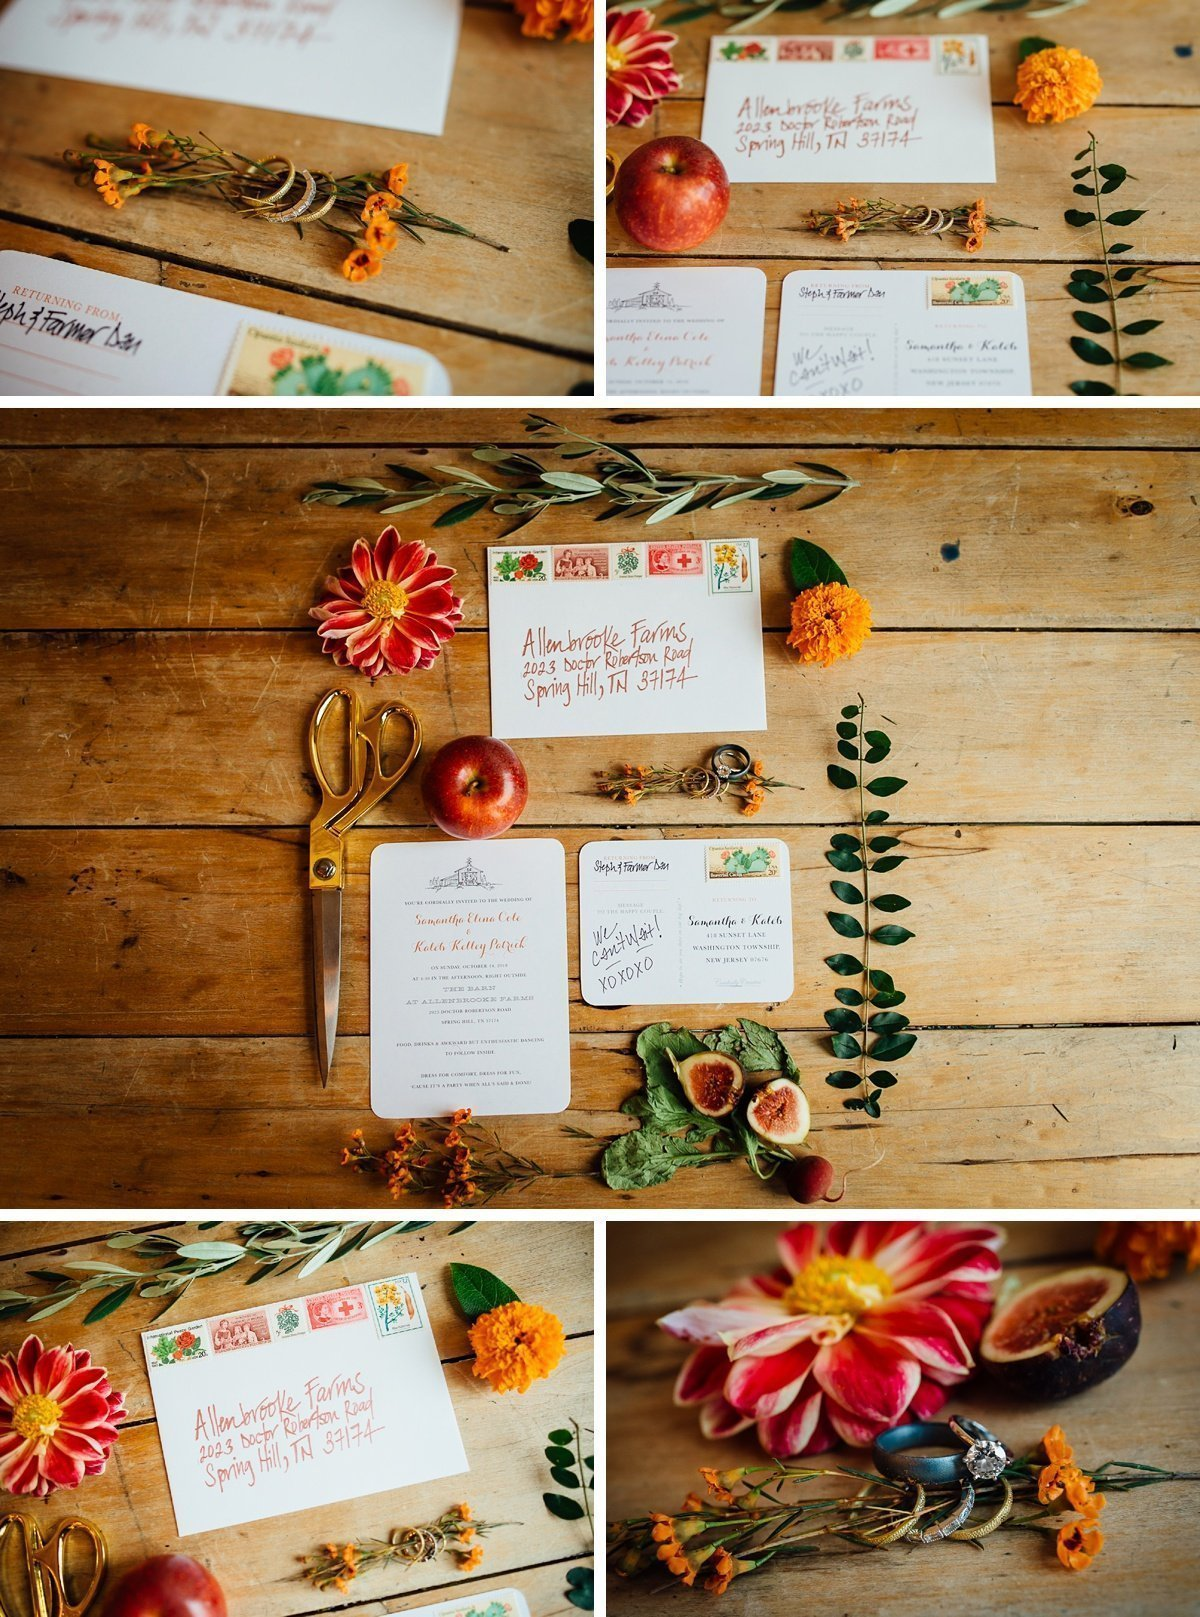 allenbrooke-wedding-details-flatlay Allenbrooke Farms | Spring Hill TN Wedding | Sam and Kaleb